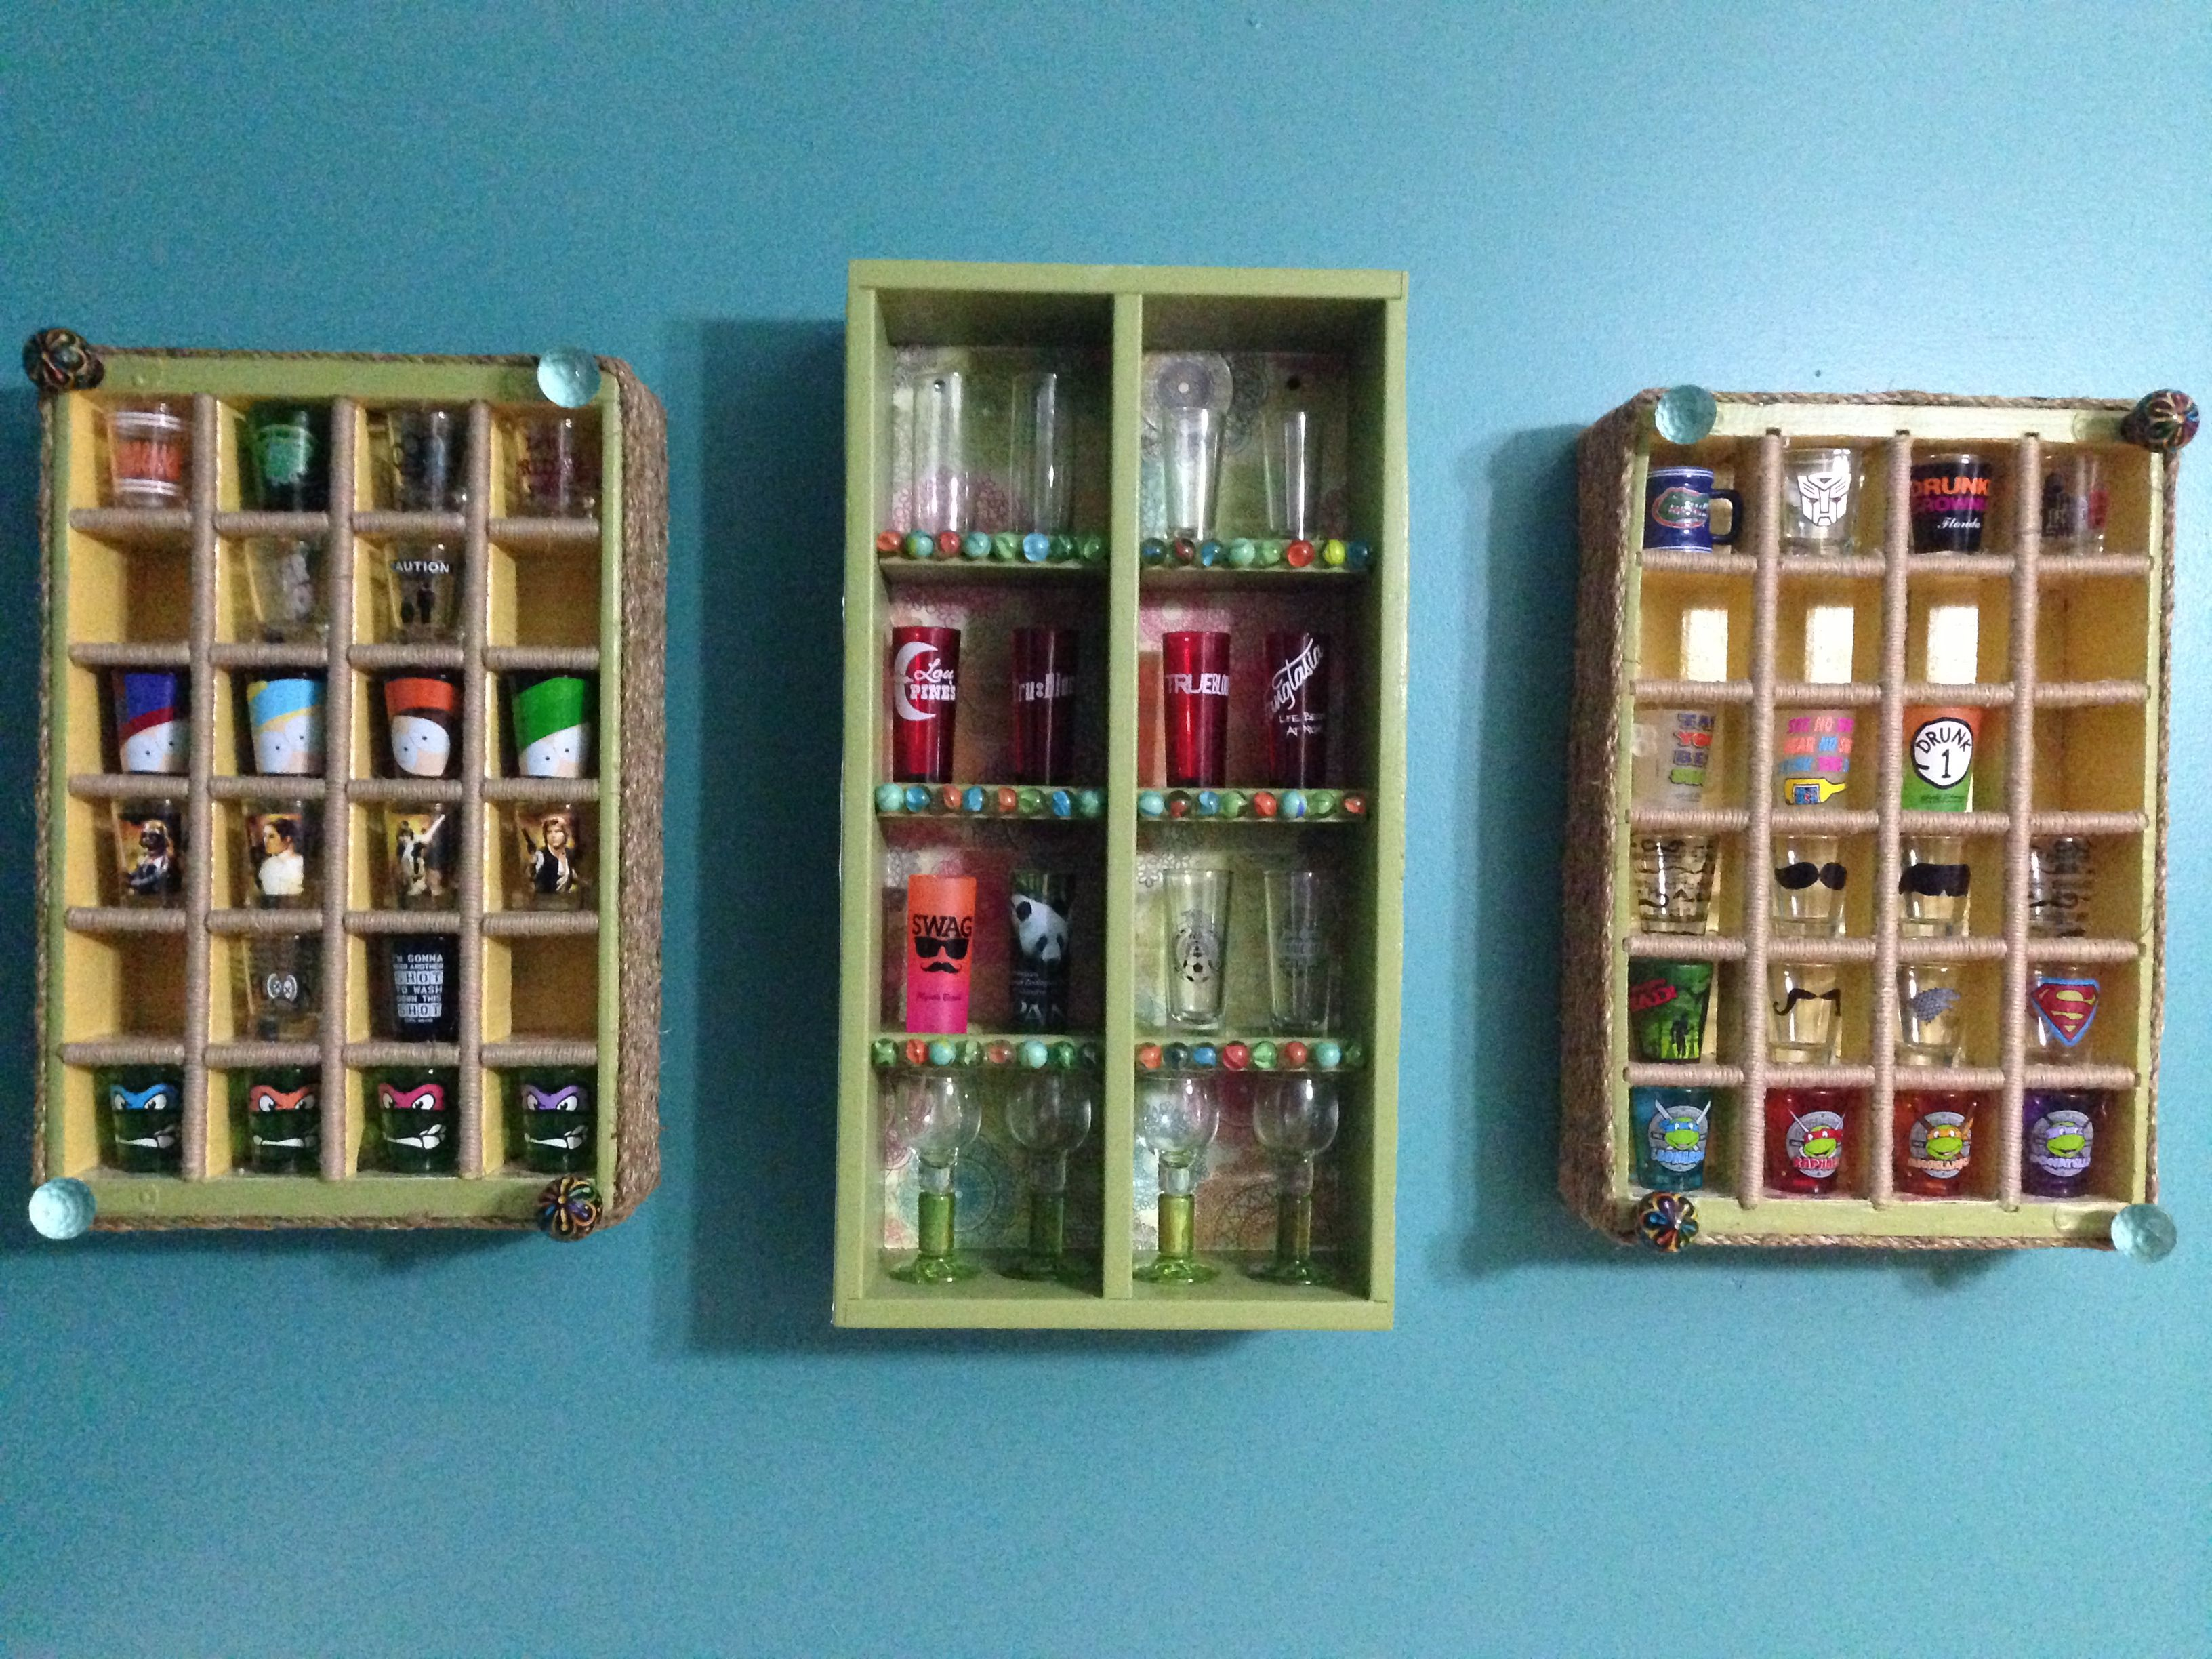 Upcycle Shot glass display cases that I made from coke crates and